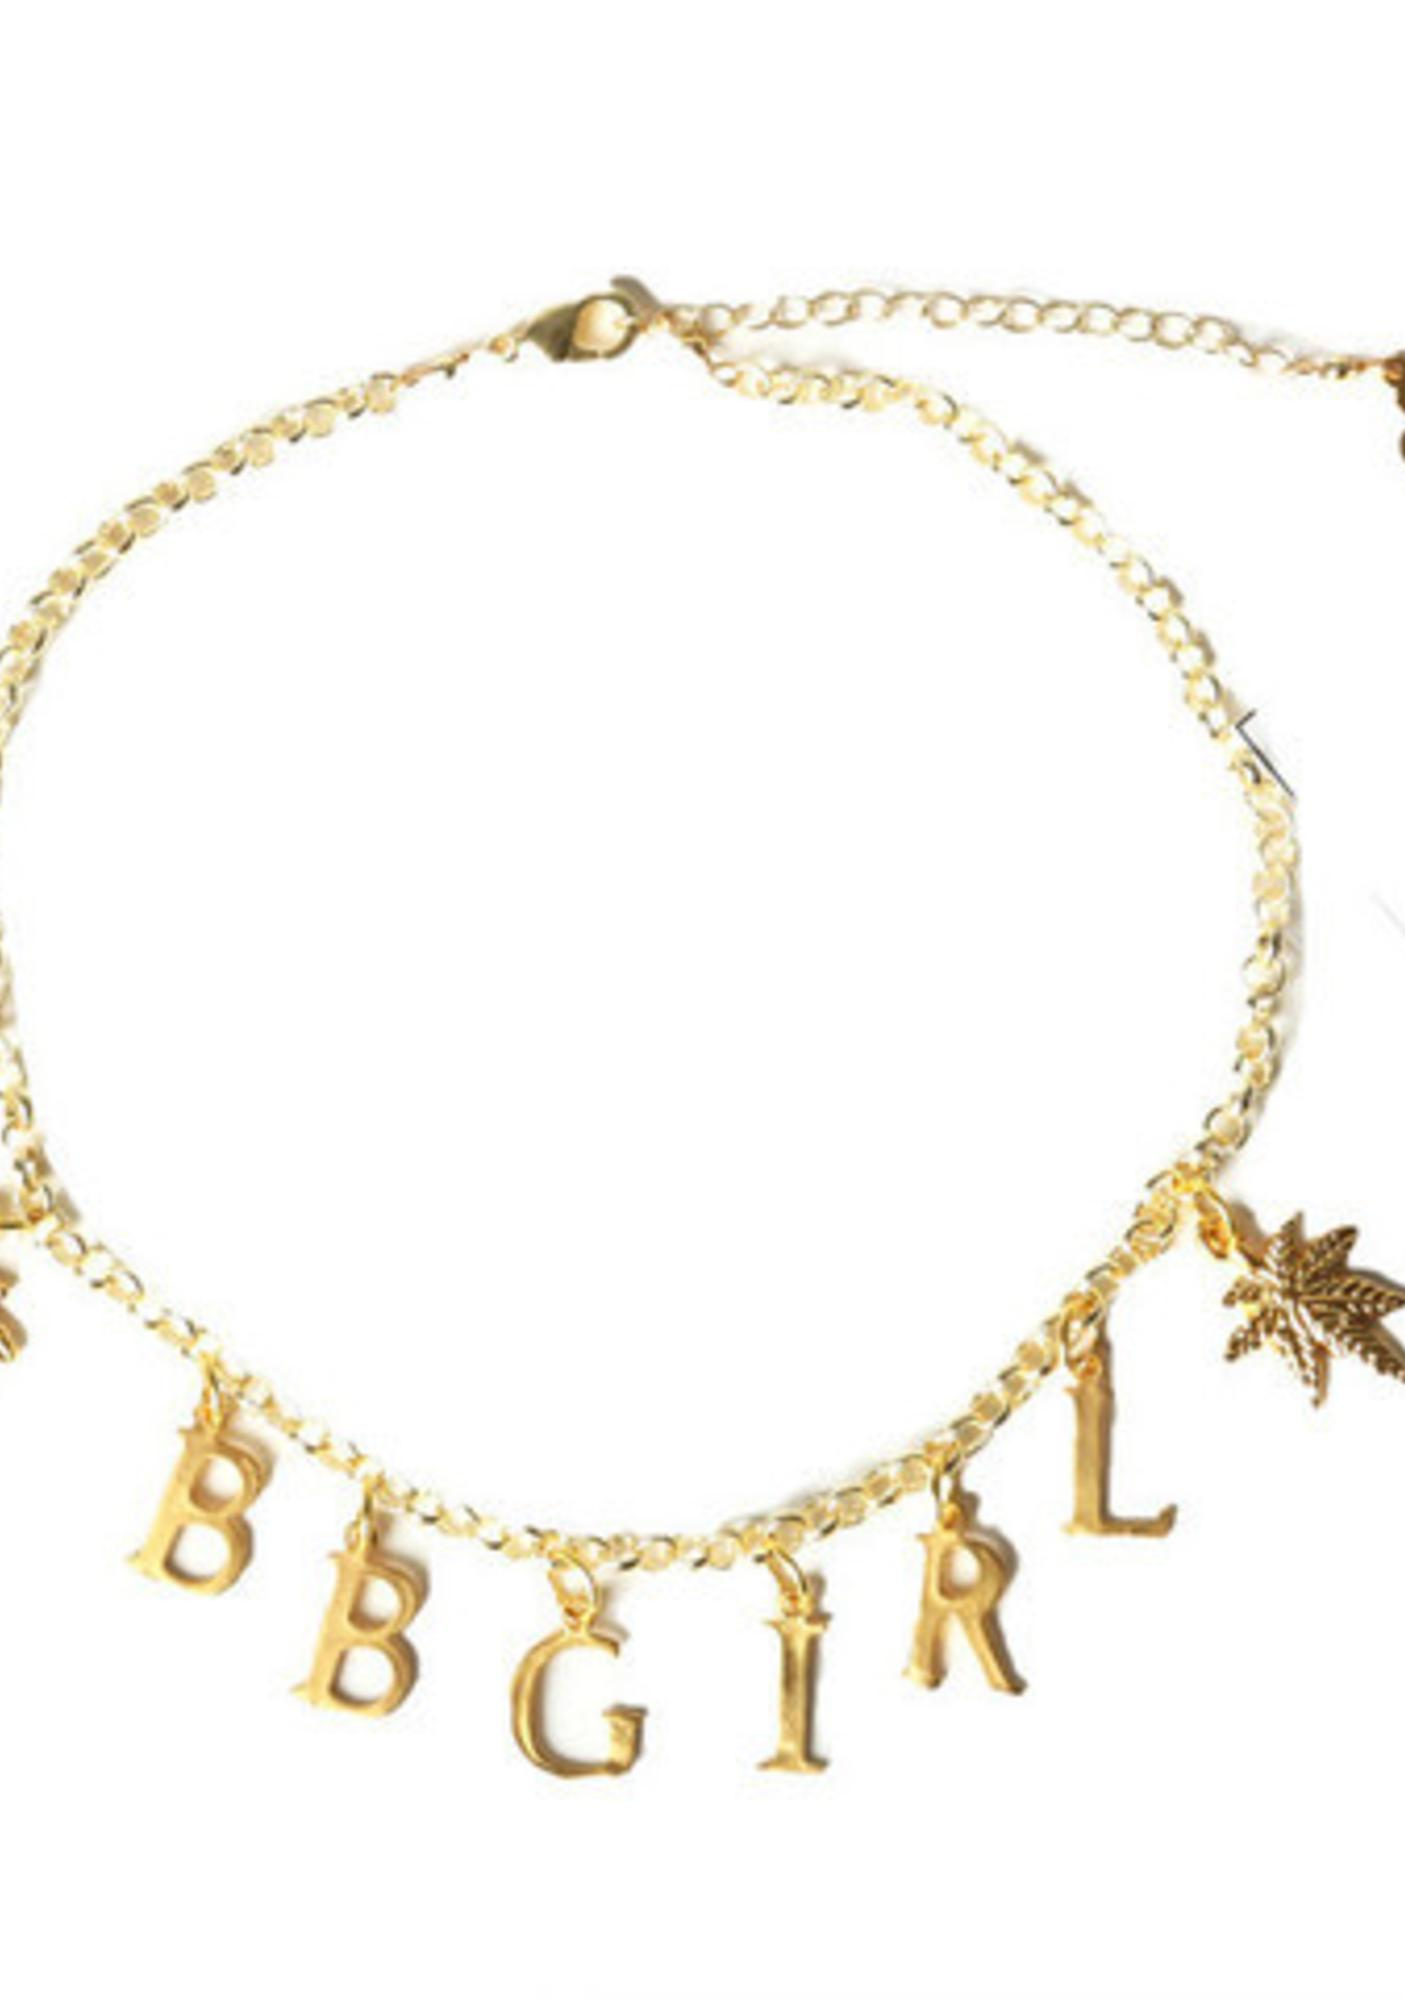 United Couture x VidaKush BB Girl Charm Choker